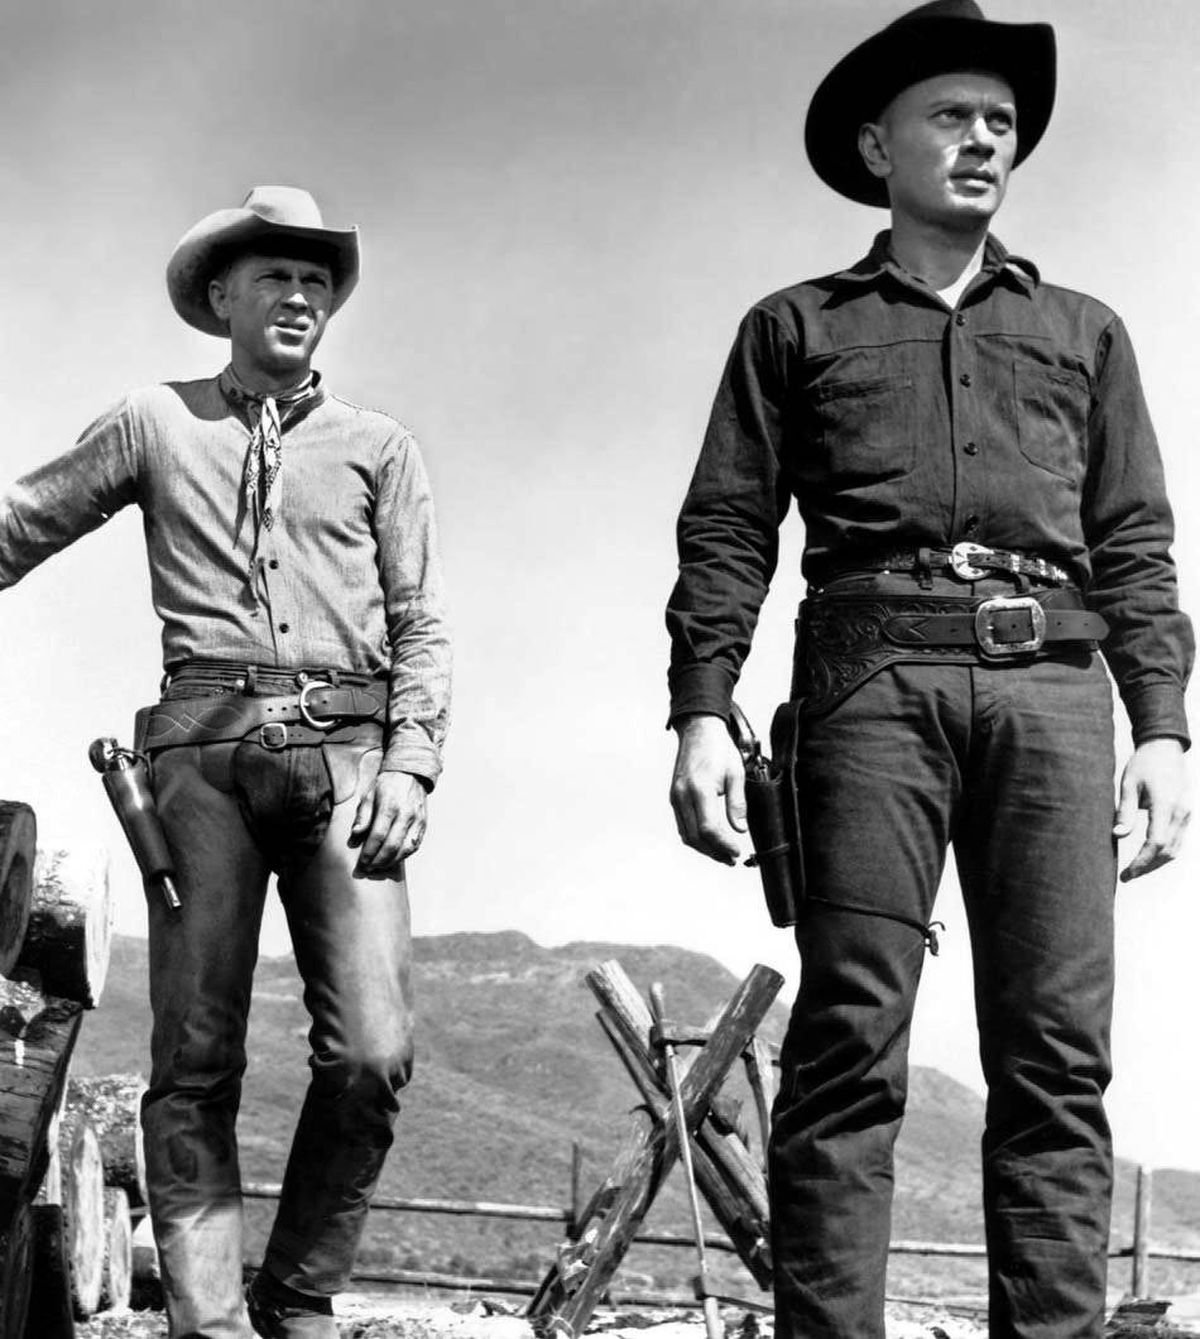 MOVIE The Magnificent Seven TCM, 10:15 p.m. ET; 7:15 p.m. PT Back in 1960, very few moviegoers were aware this rousing western was actually a remake of Japanese director Akira Kurosawa's classic 1953 film The Seven Samurai. This version starred Yul Brynner as Chris , a professional gunslinger hired to protect a defenceless Mexican village from its annual ransacking by the ruthless bandito named Calvera (Eli Wallach). To ensure the townsfolk's safety, he enlists the assistance of six fellow mercenaries, played by Steve McQueen, Robert Vaughn, Charles Bronson, James Coburn, Horst Buchholz and Brad Dexter. The rousing refrain by composer Elmer Bernstein was later immortalized as the soundtrack for Marlboro cigarettes.